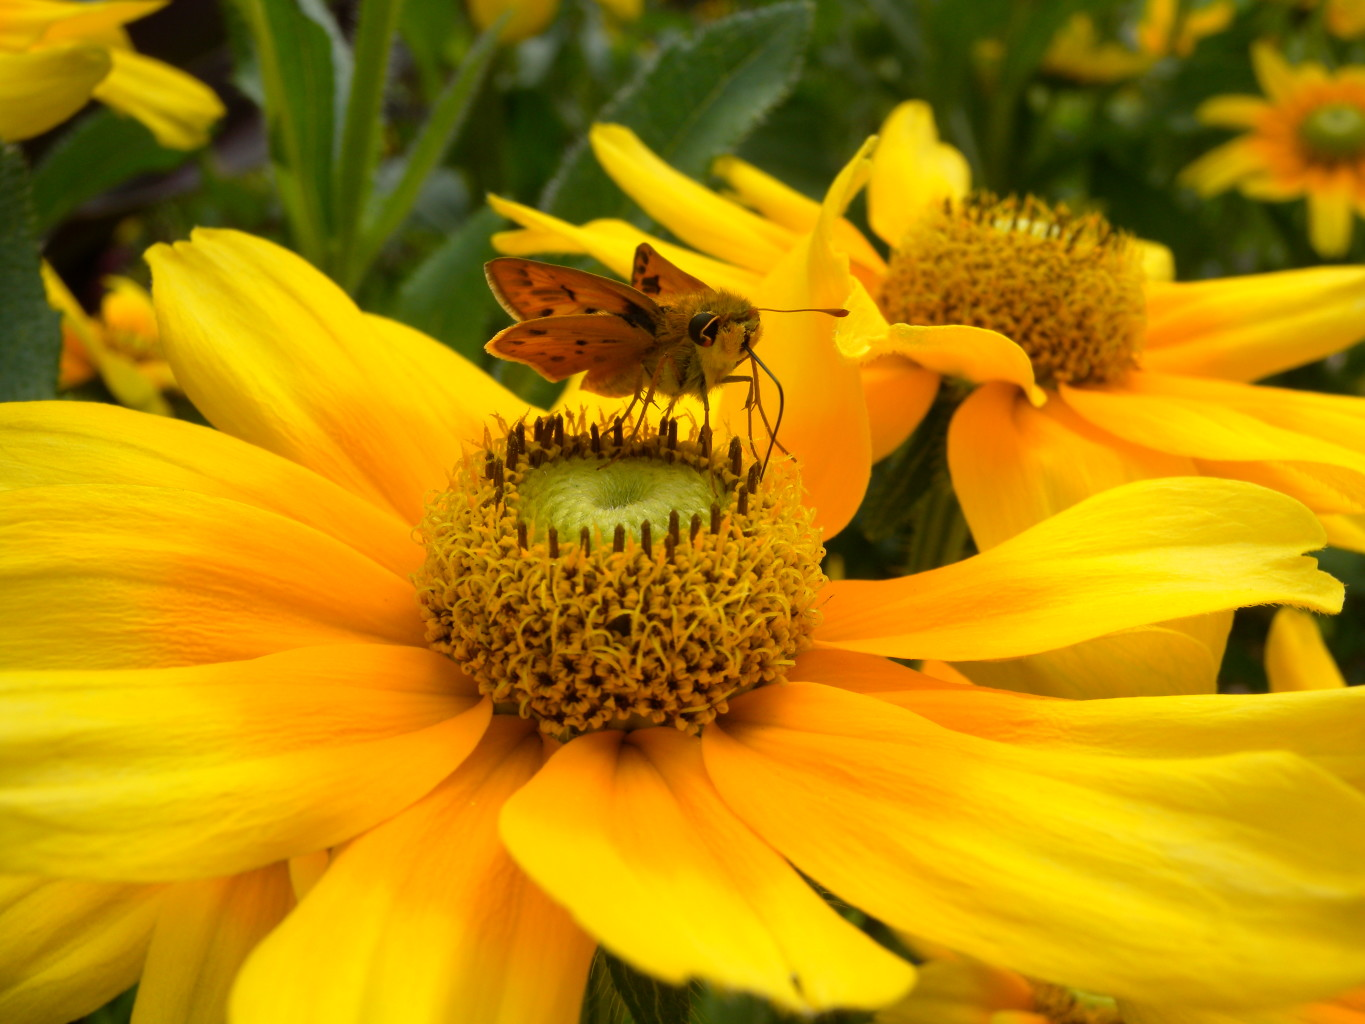 Image: Small Butterfly on a seemingly large yellow flower